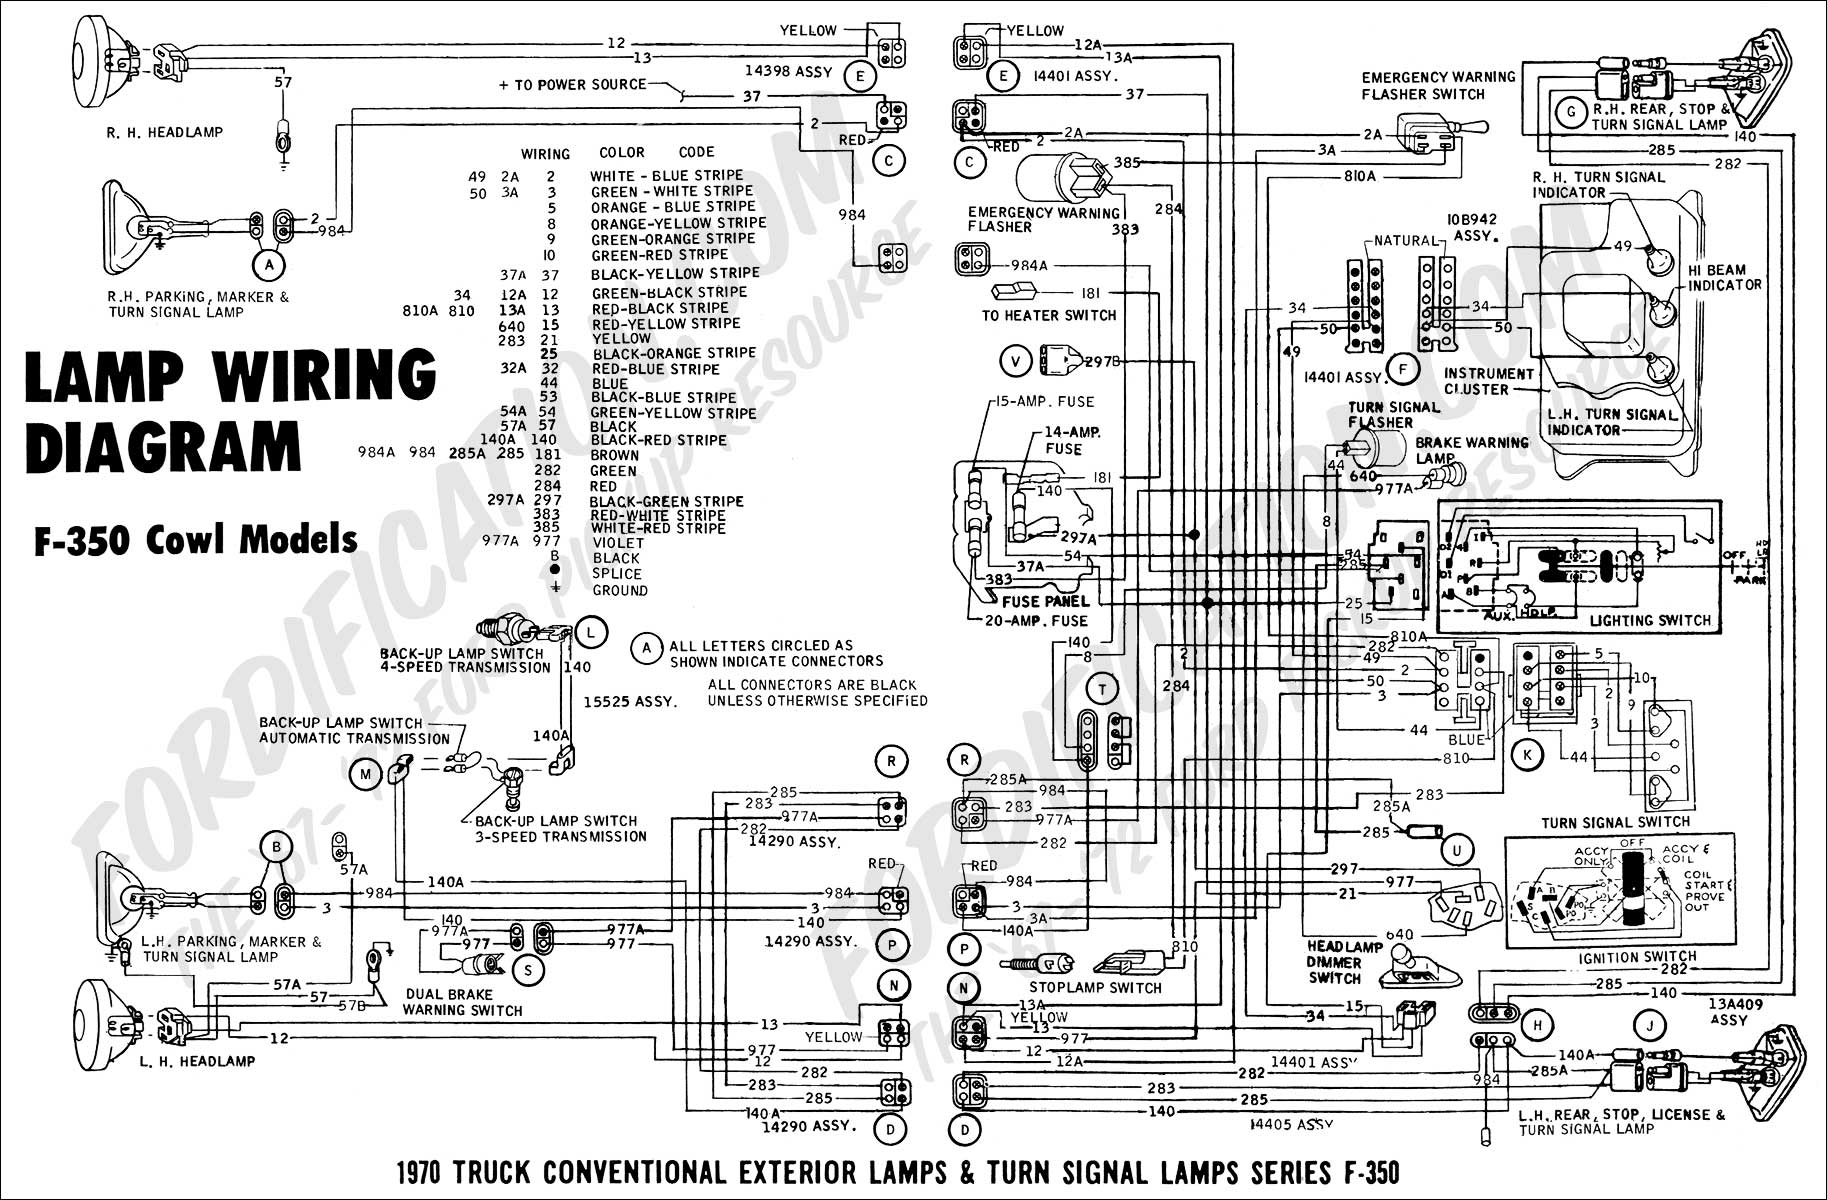 1999 ford f250 headlight wiring diagram hifonics dome light switch autos post